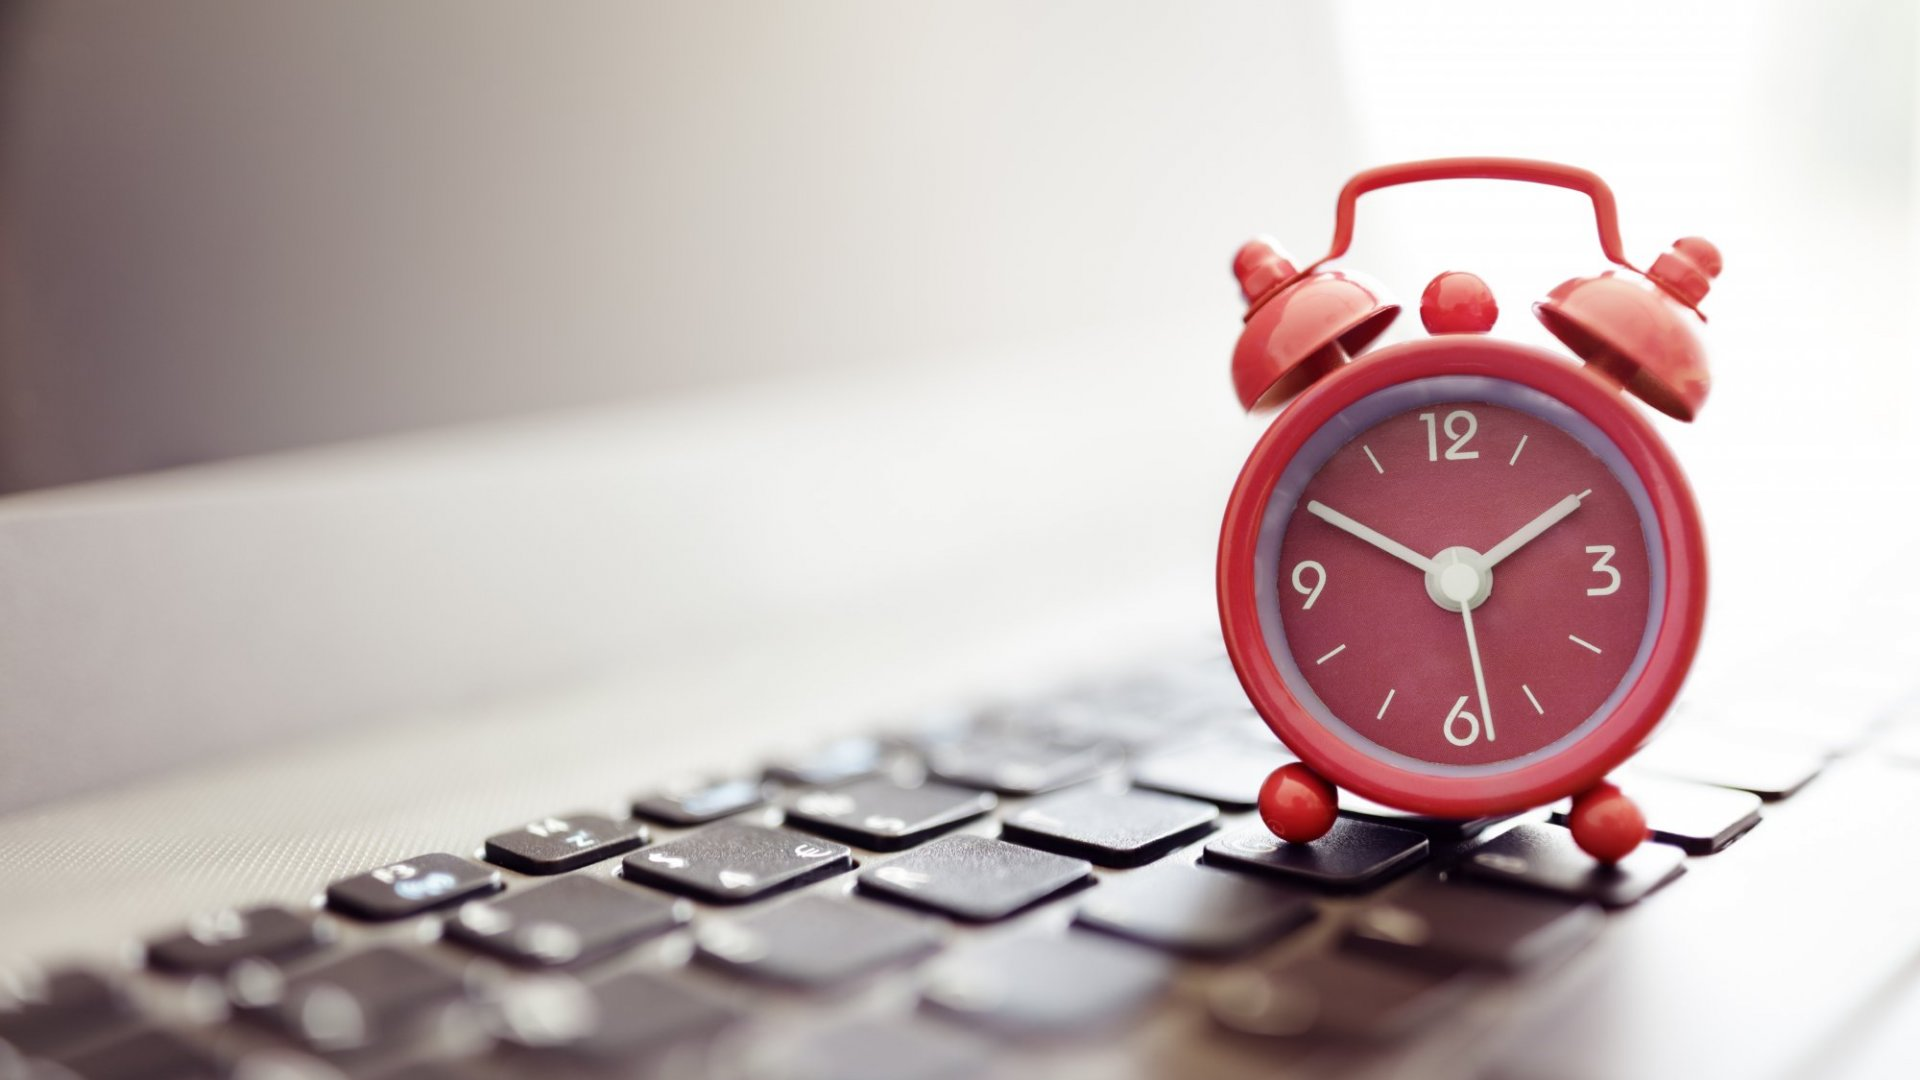 These 5 Productivity Hacks and Tools Can Save You a Bunch of Time in 2019